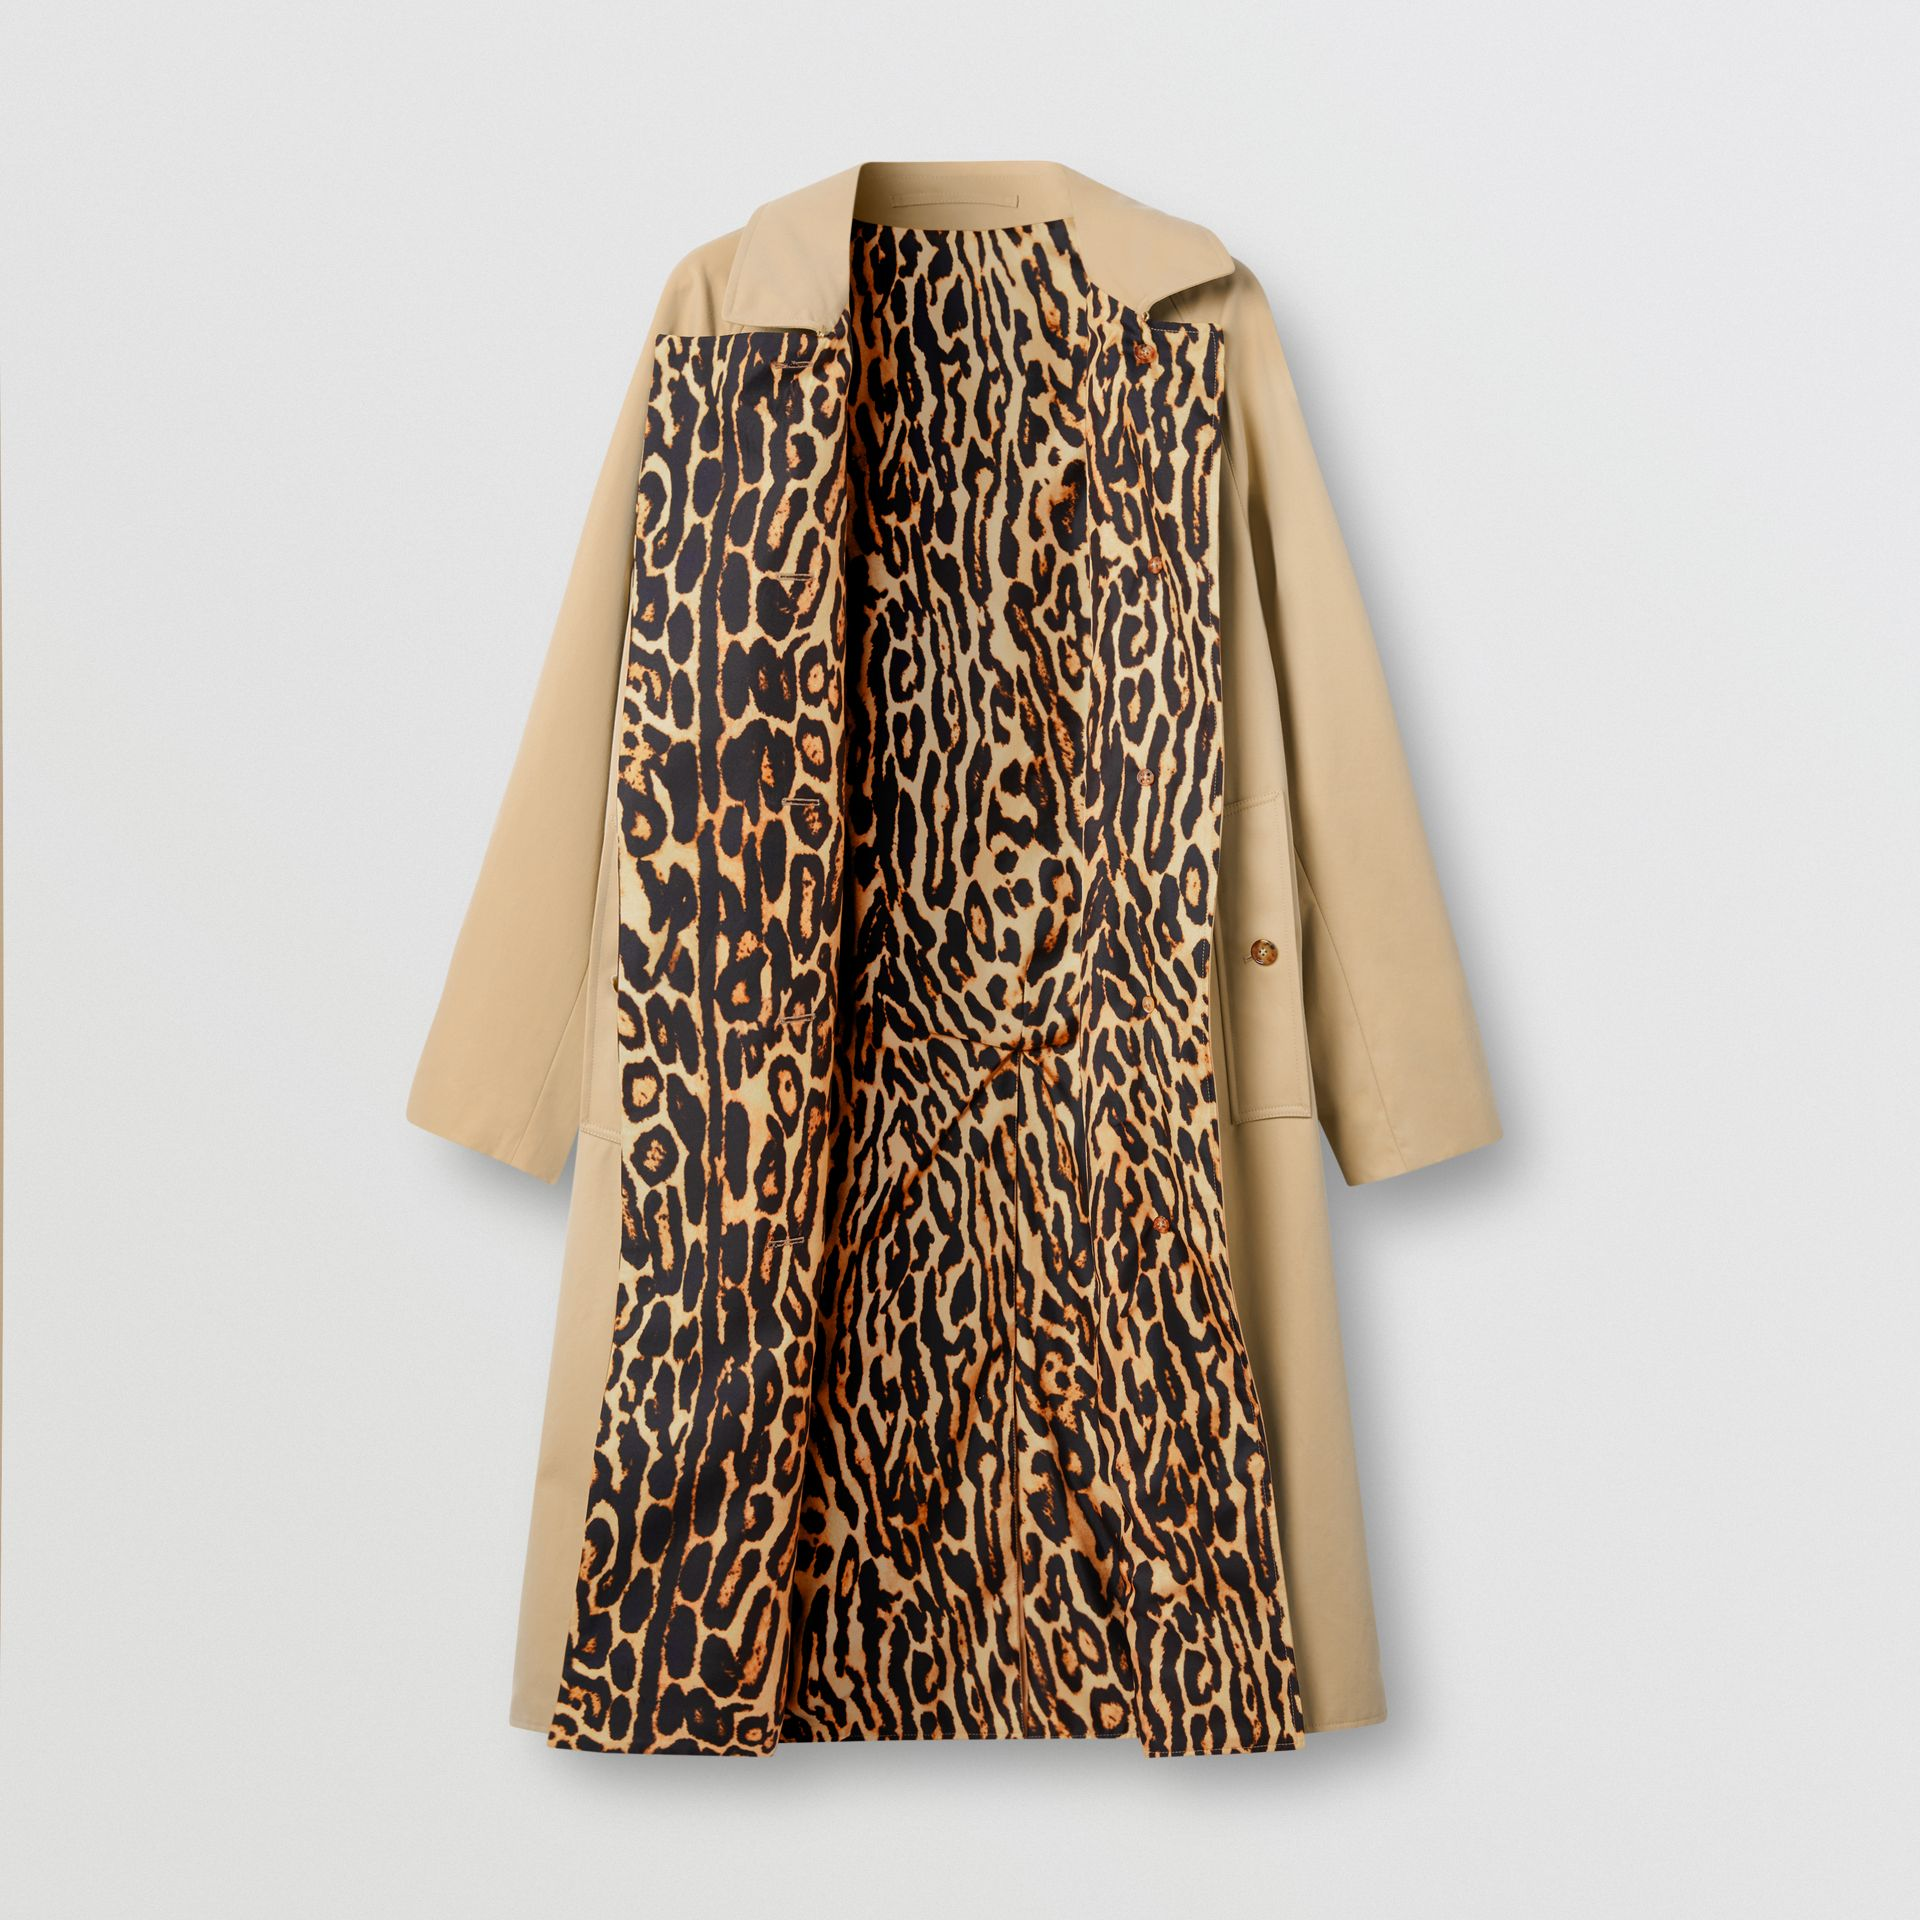 Leopard Print-lined Cotton Gabardine Car Coat in Honey - Women | Burberry Australia - gallery image 3